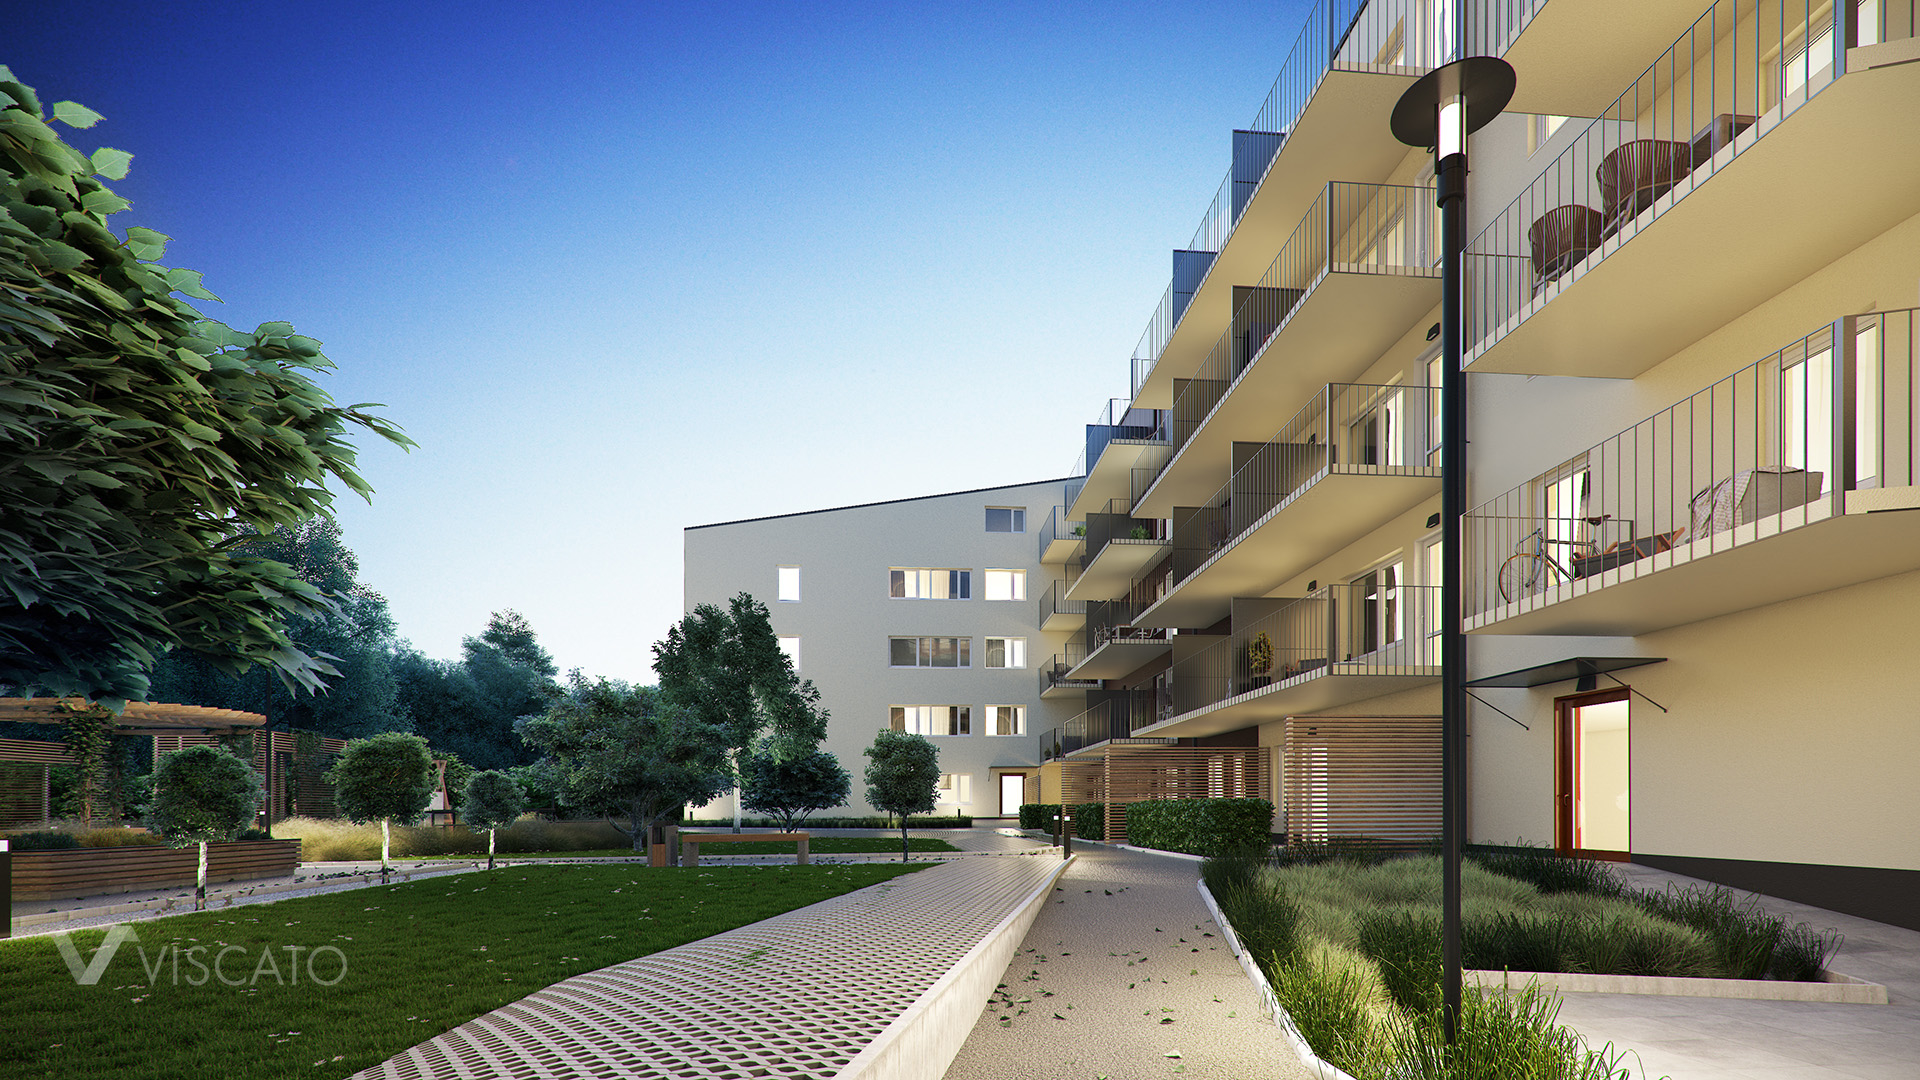 3d visualisation of a multi-family buidling- evening light